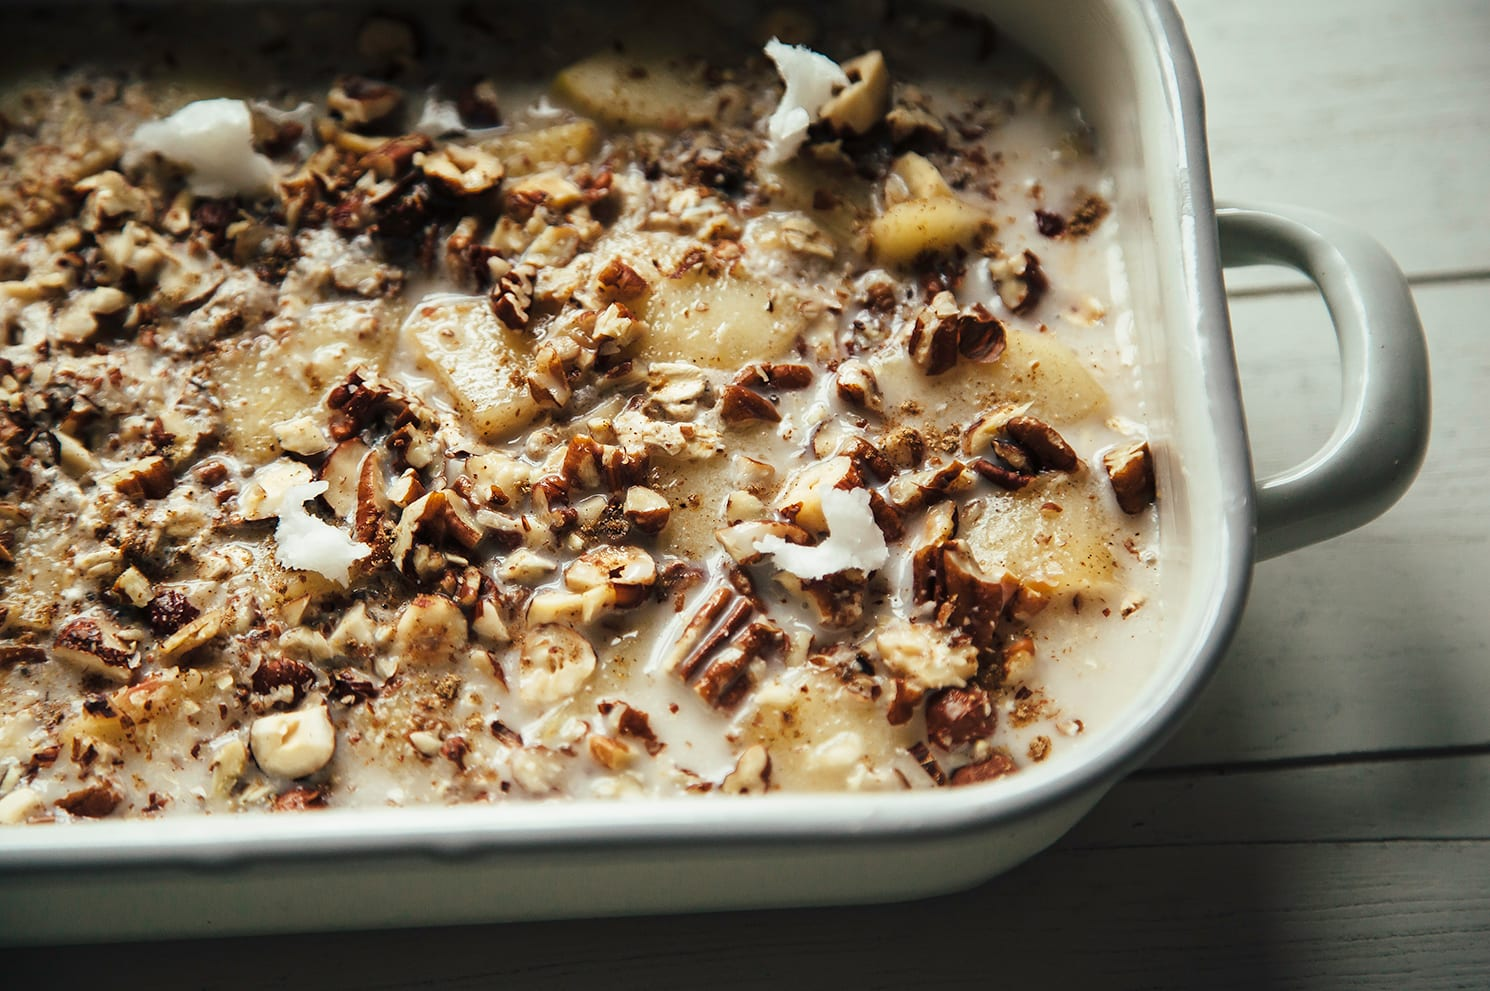 Image shows an assembled apple spice baked oatmeal in a white enamelware baking dish, pre-bake.